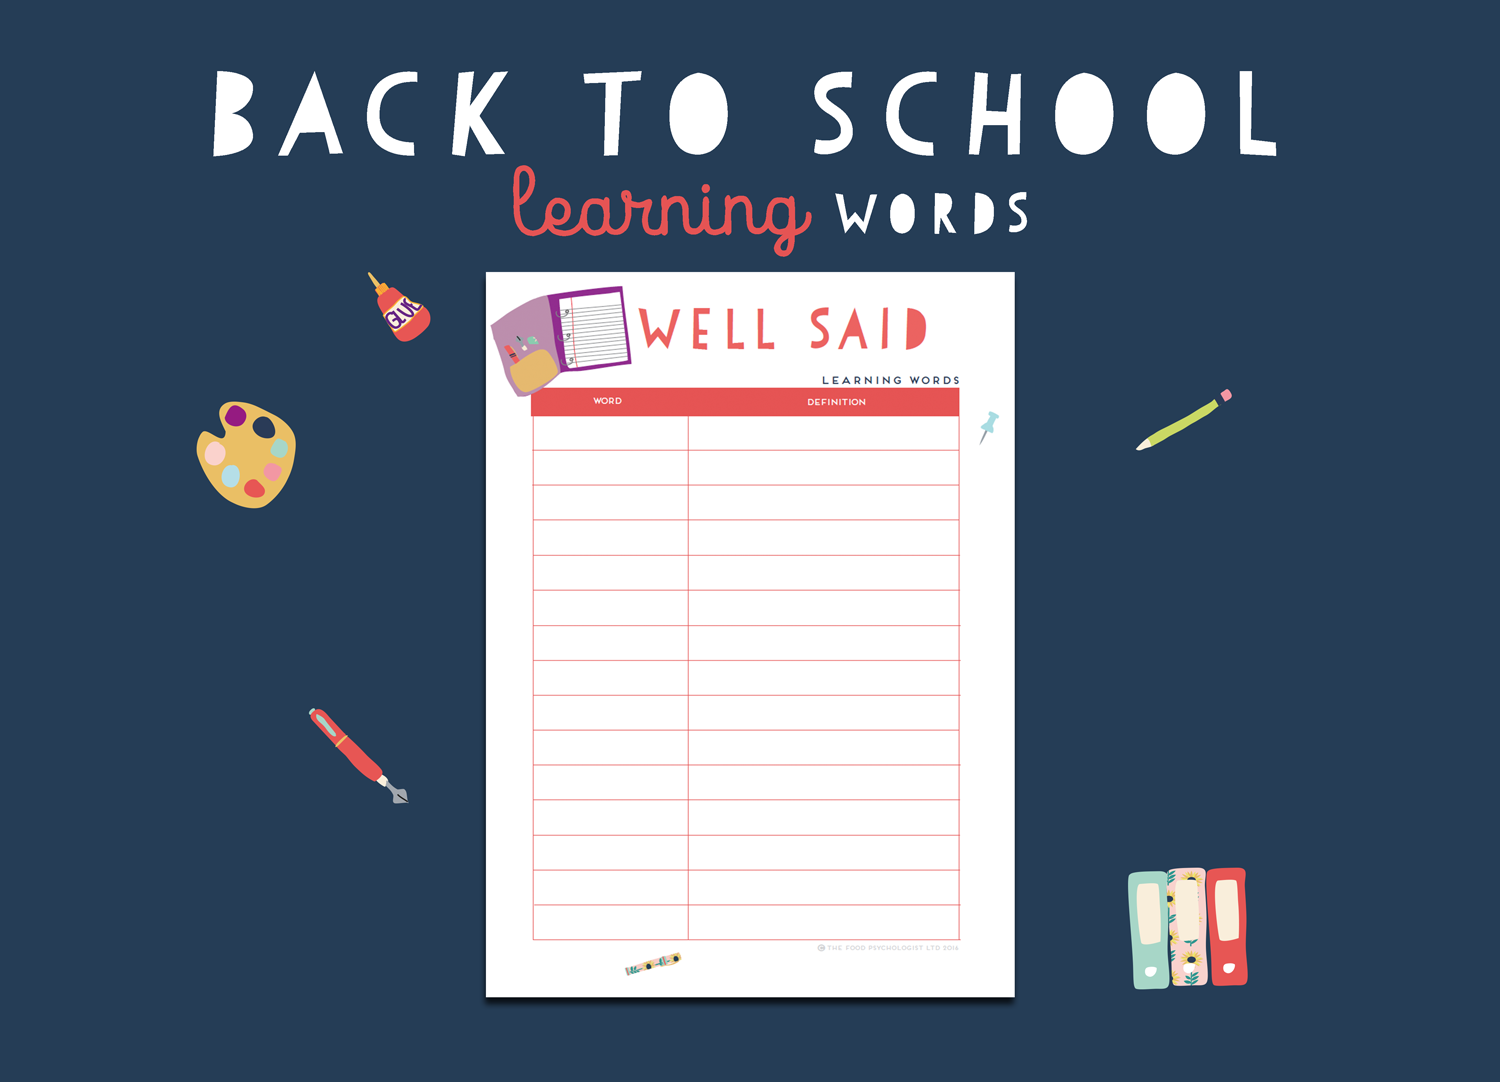 Back To School Learning Words